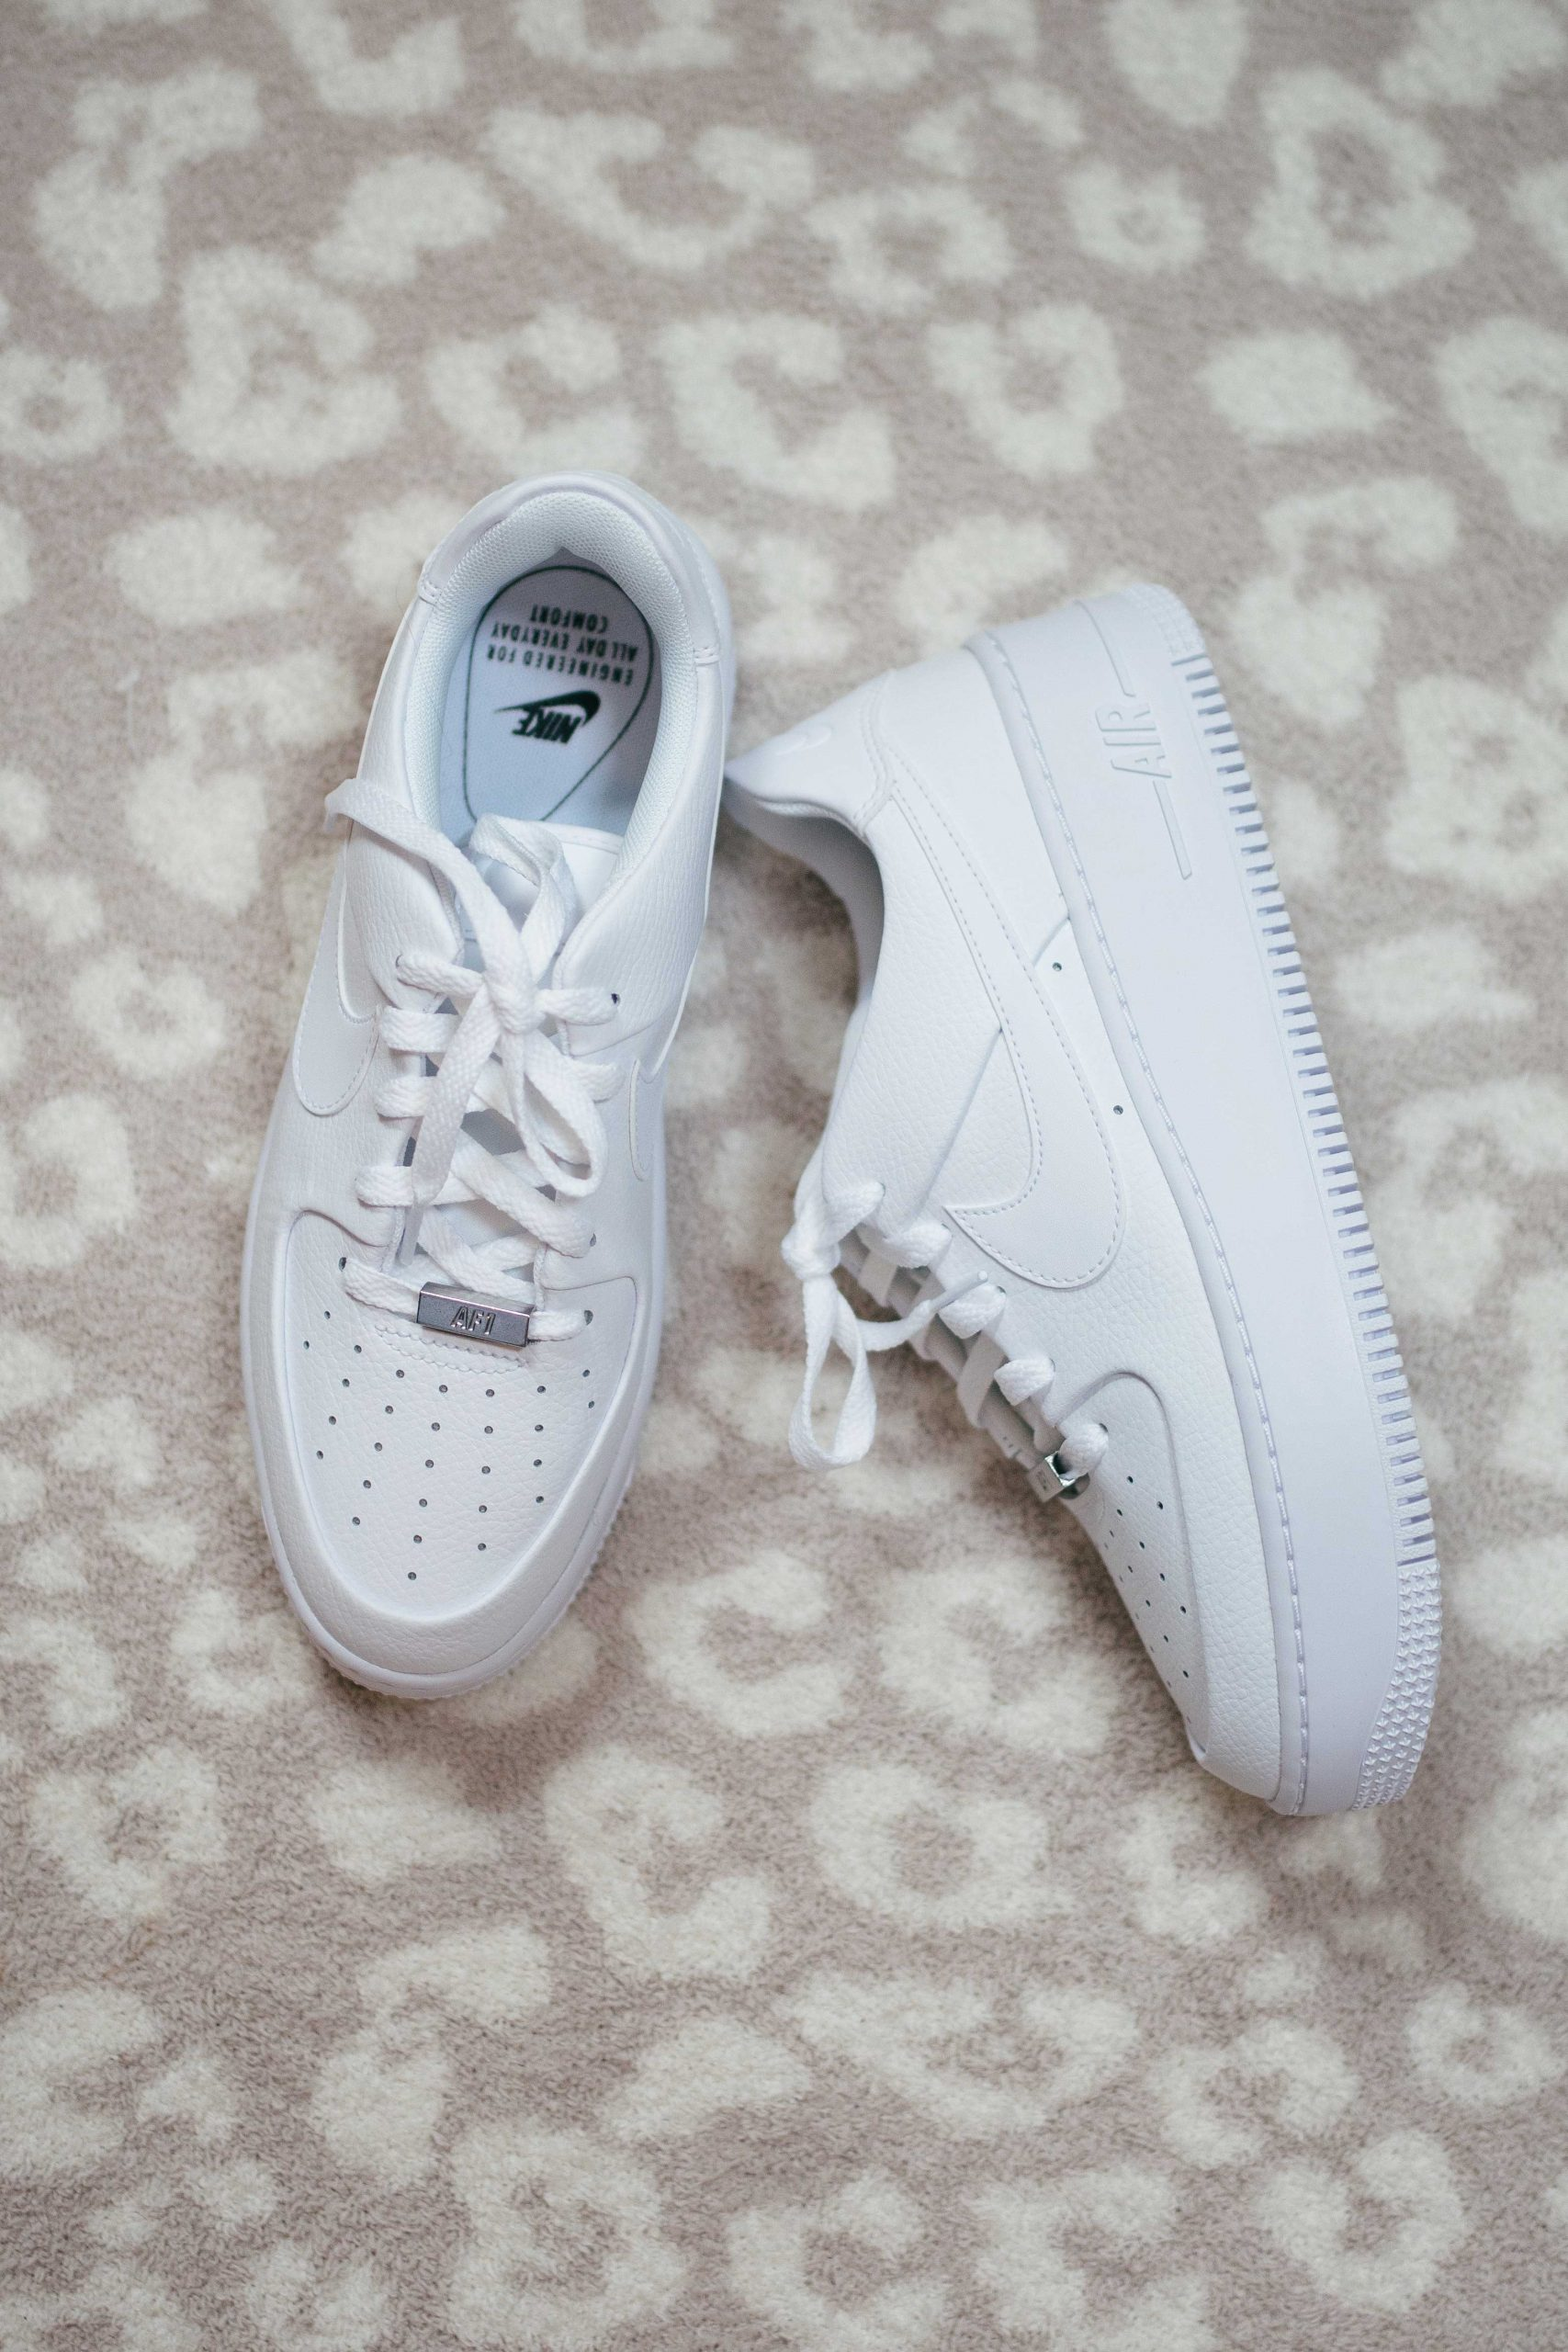 Virginia blogger, Lauren Dix, tries on 10 different pairs of white sneakers for the ultimate white sneaker review! The Nike Air Force 1 Sage Low pictured here are included!